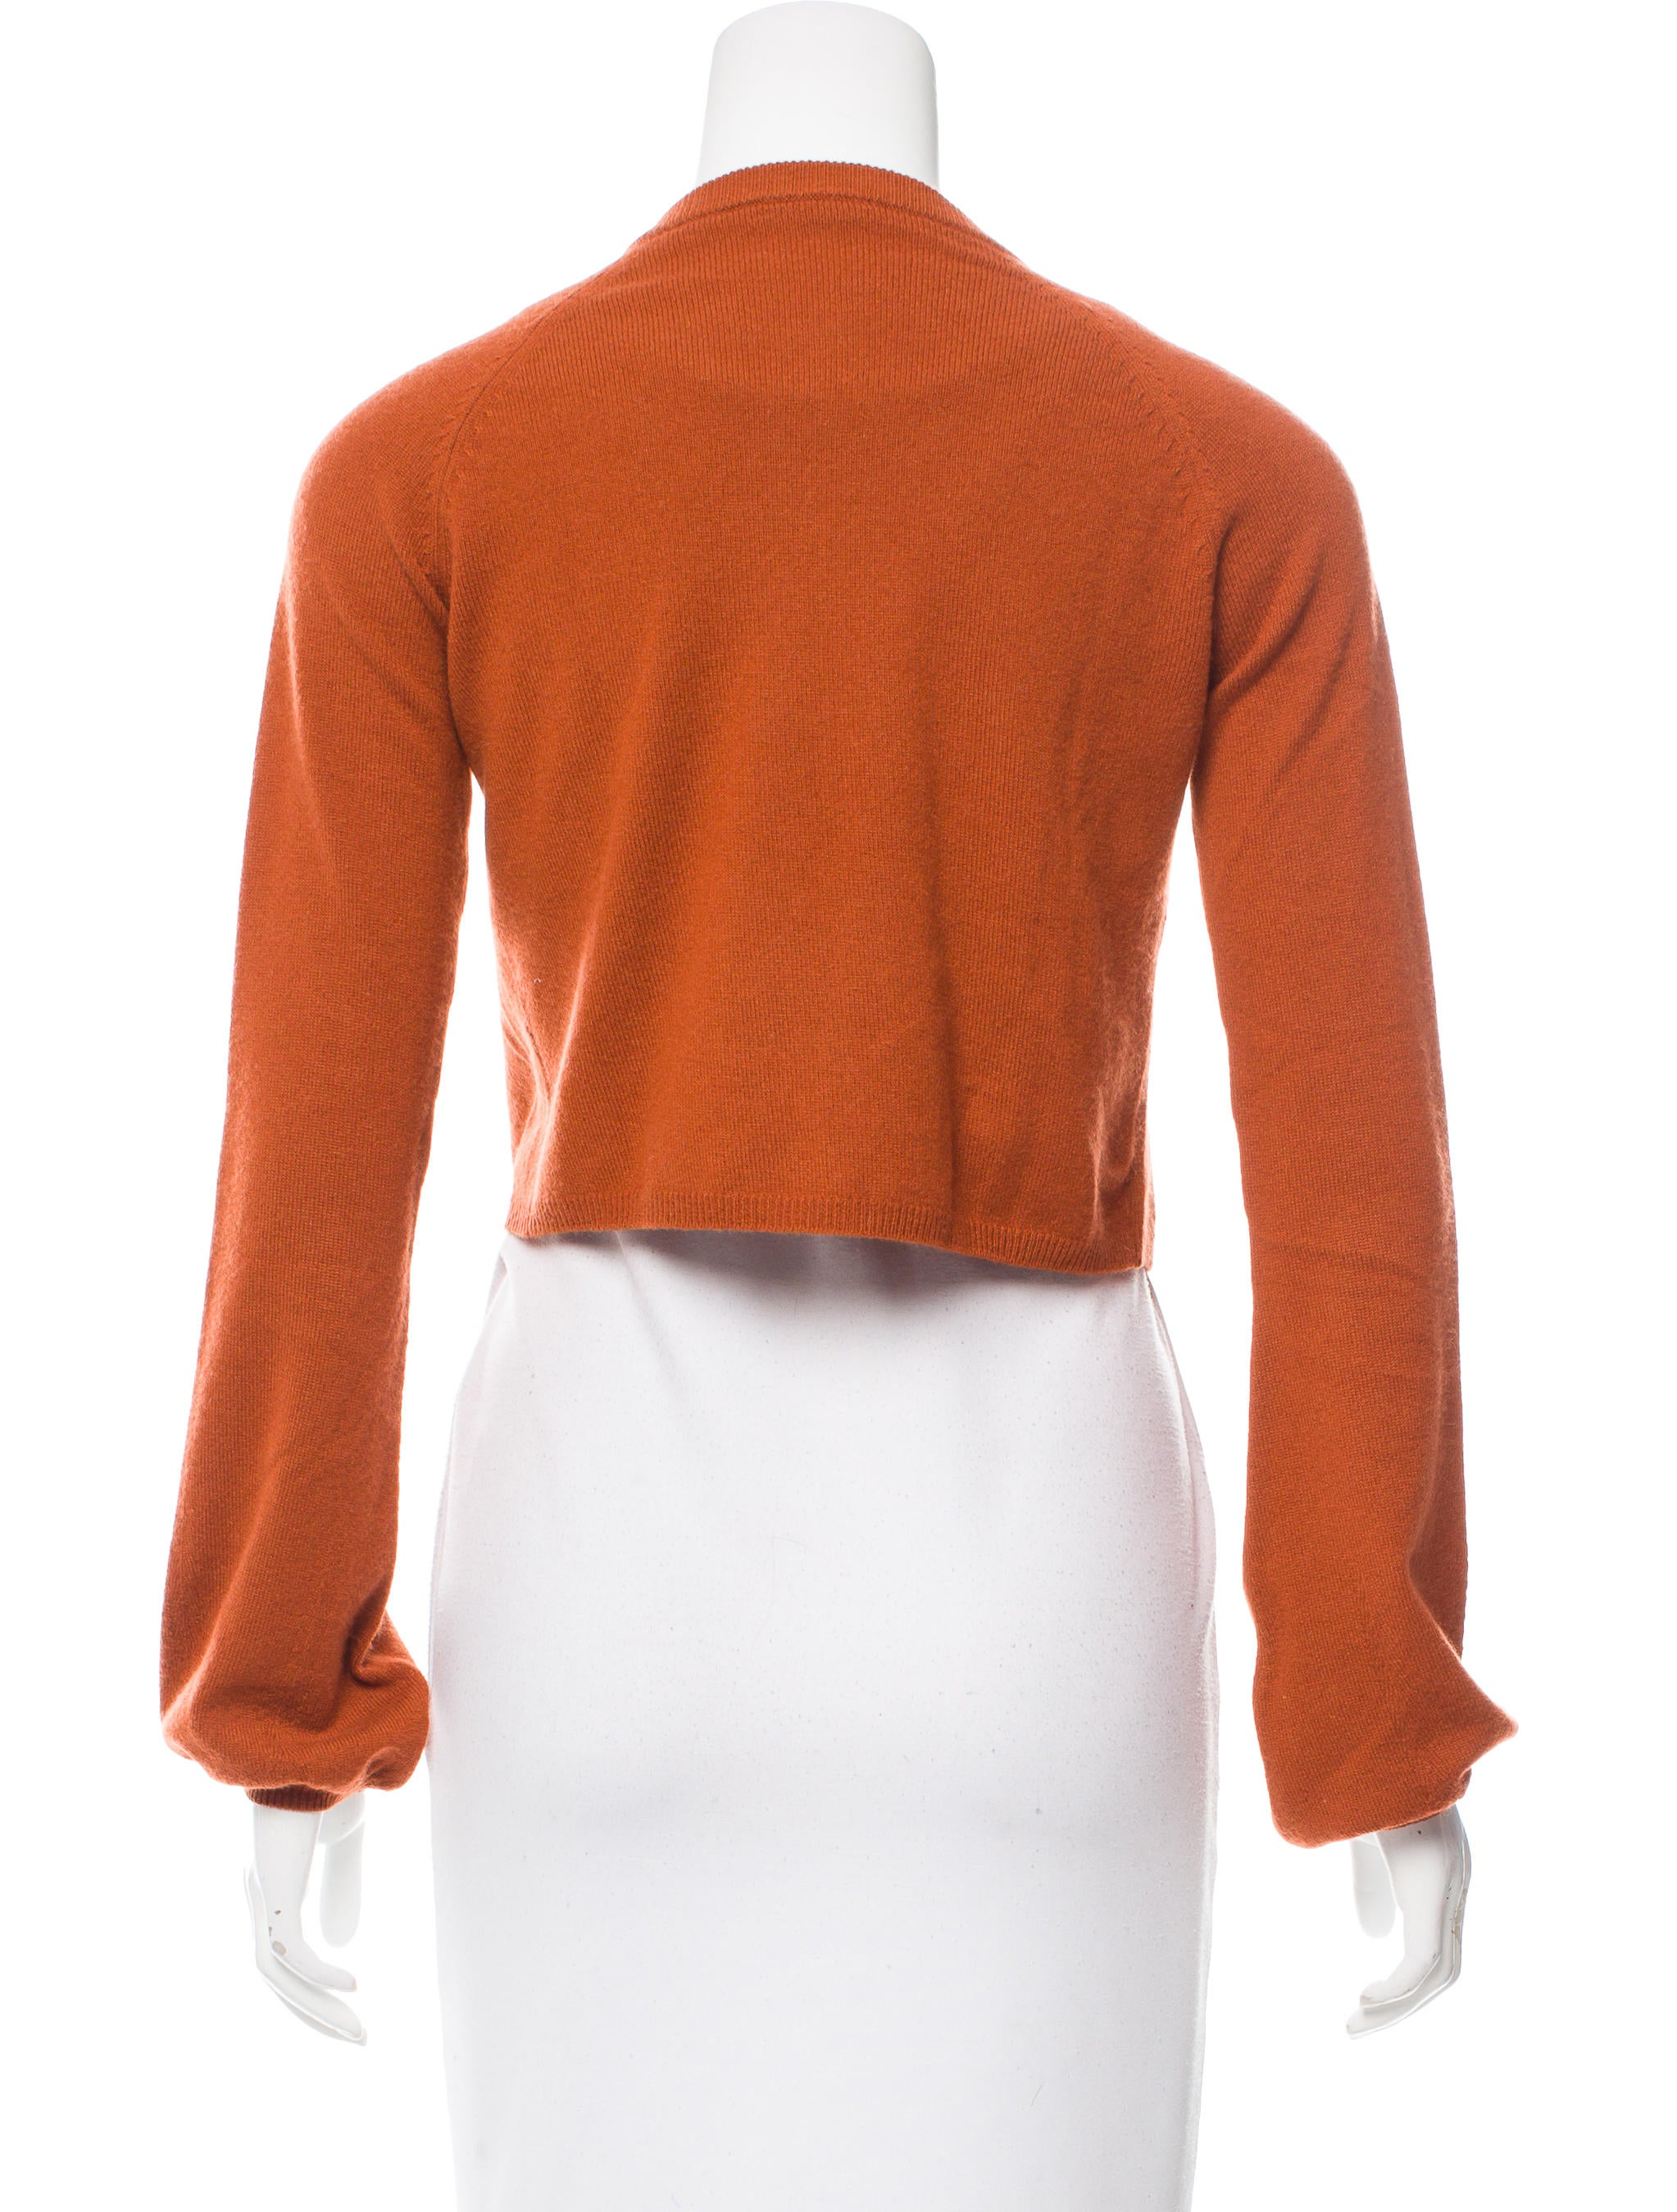 Find great deals on eBay for Long Sleeve Cropped Cardigan in Women's Clothing and Sweaters. Shop with confidence.